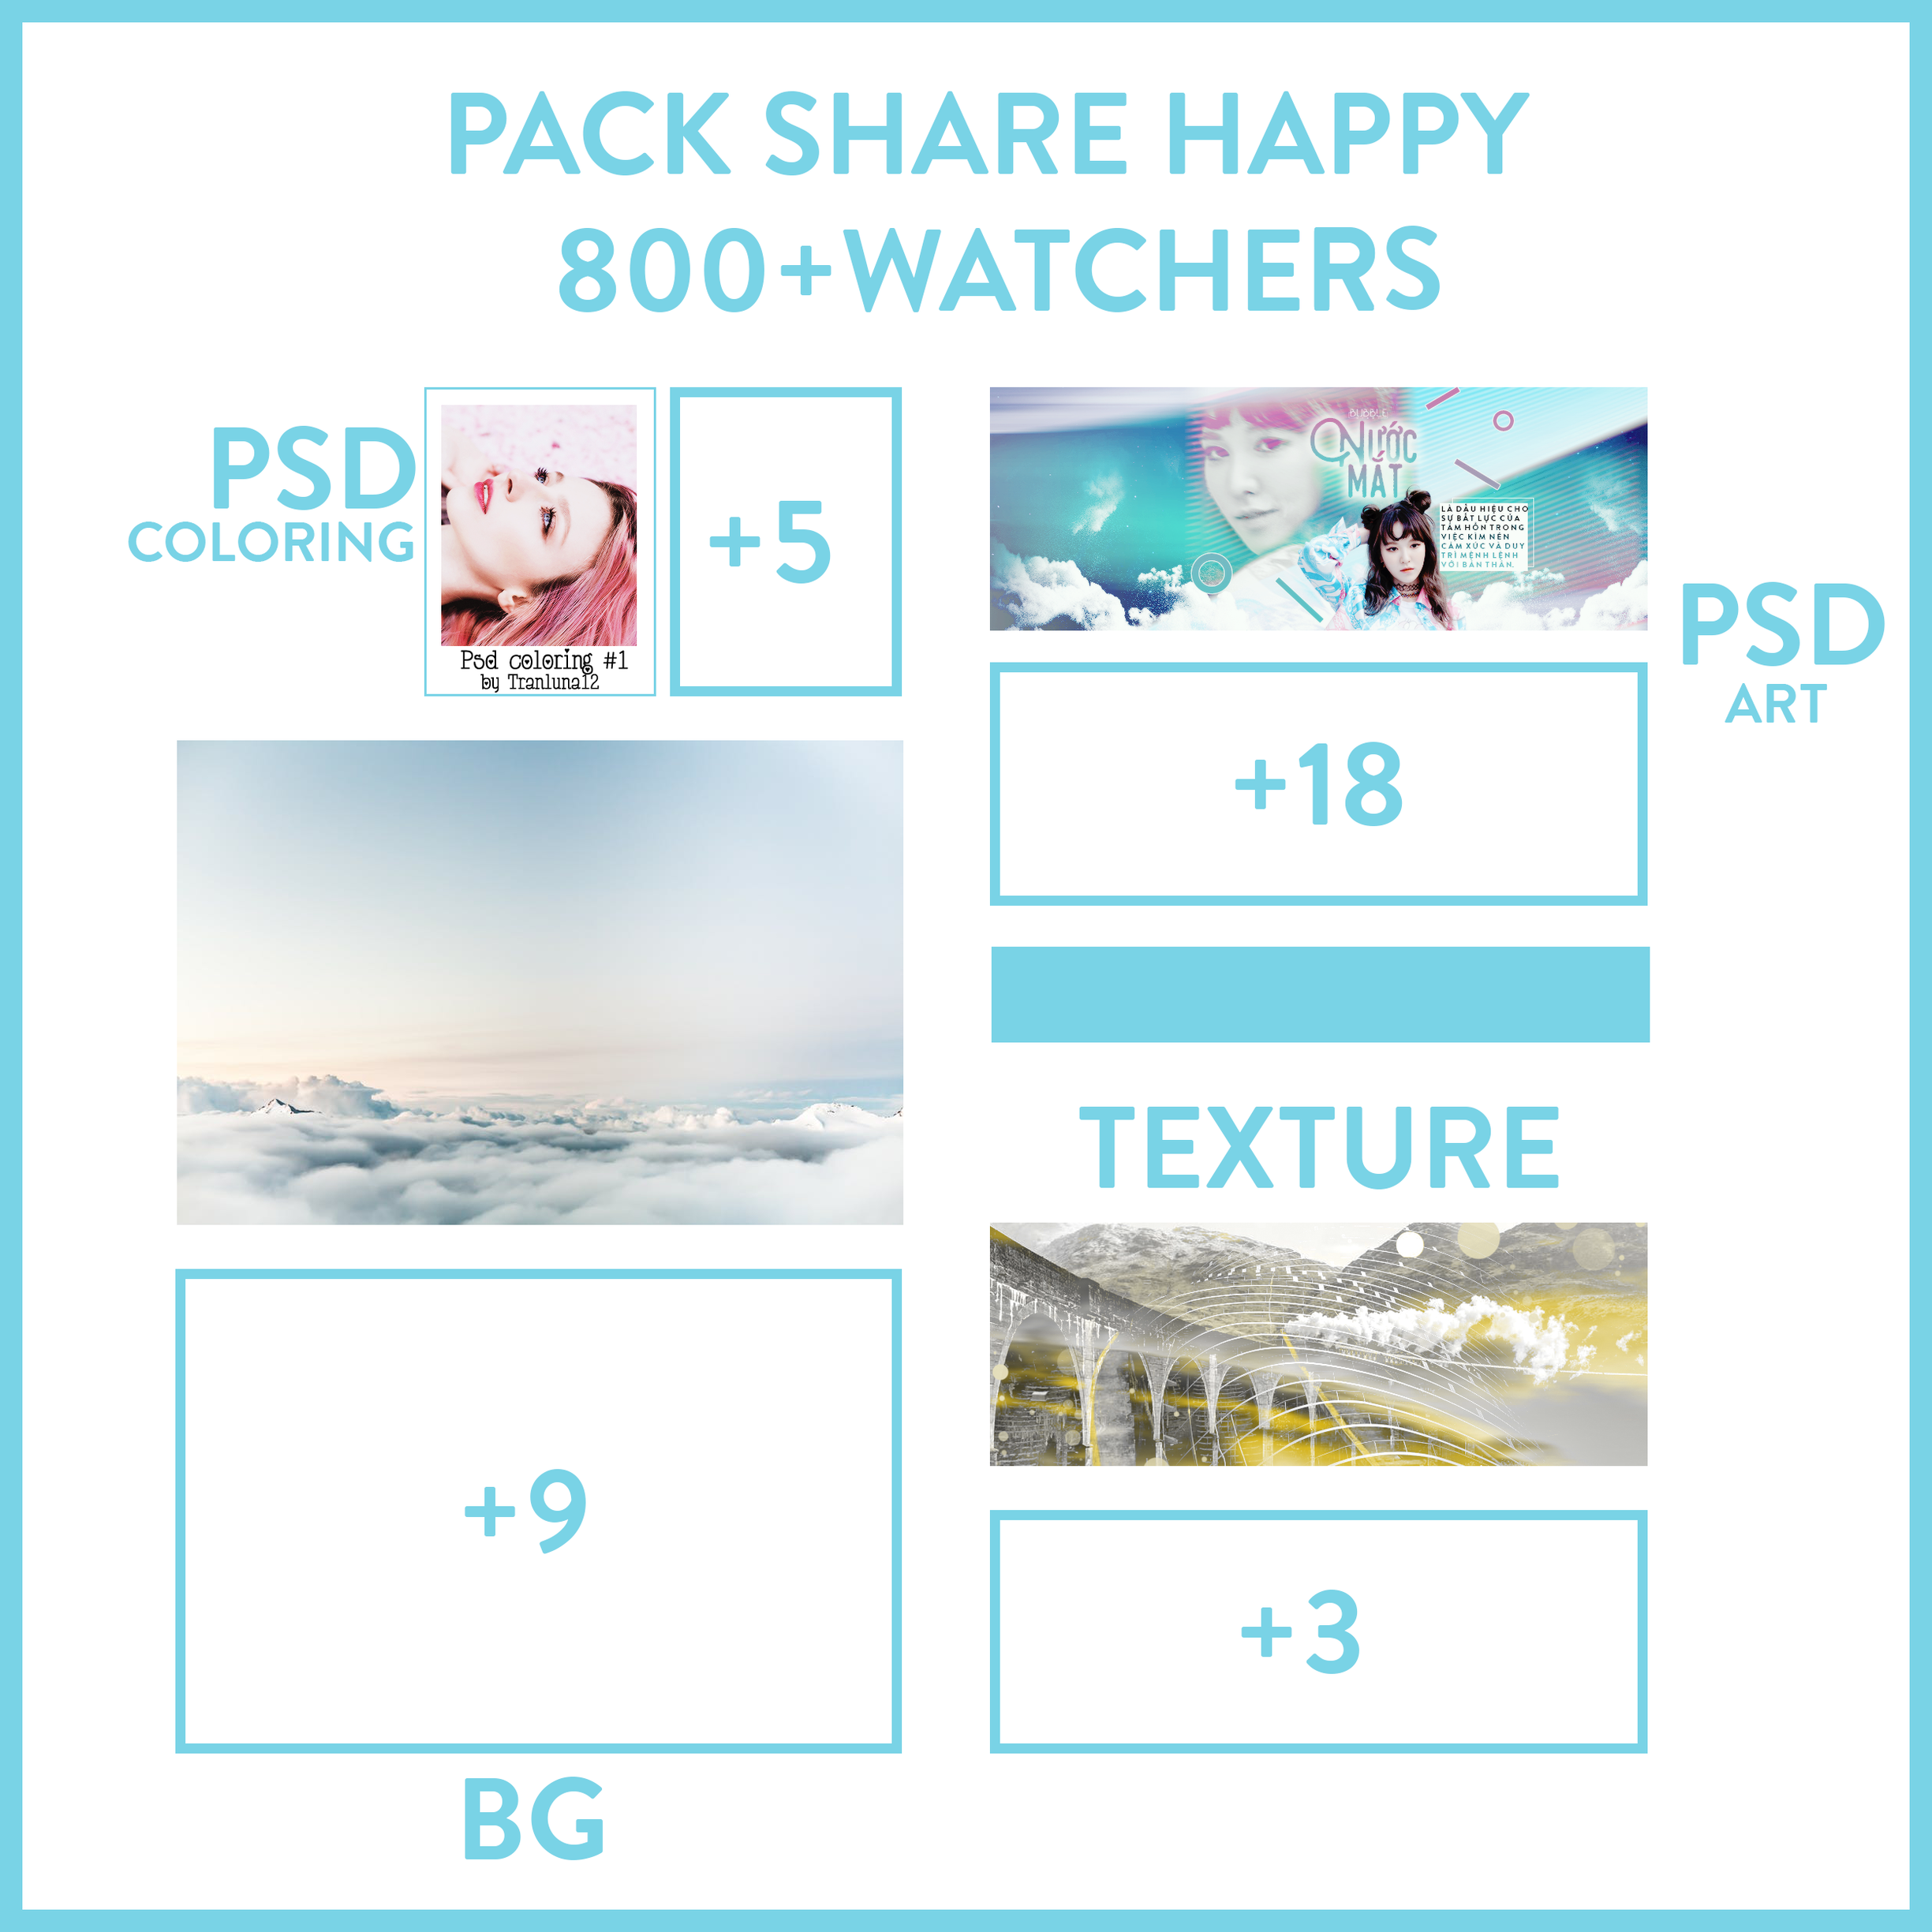 PACK SHARE 800+WATCHERS by tranluna12